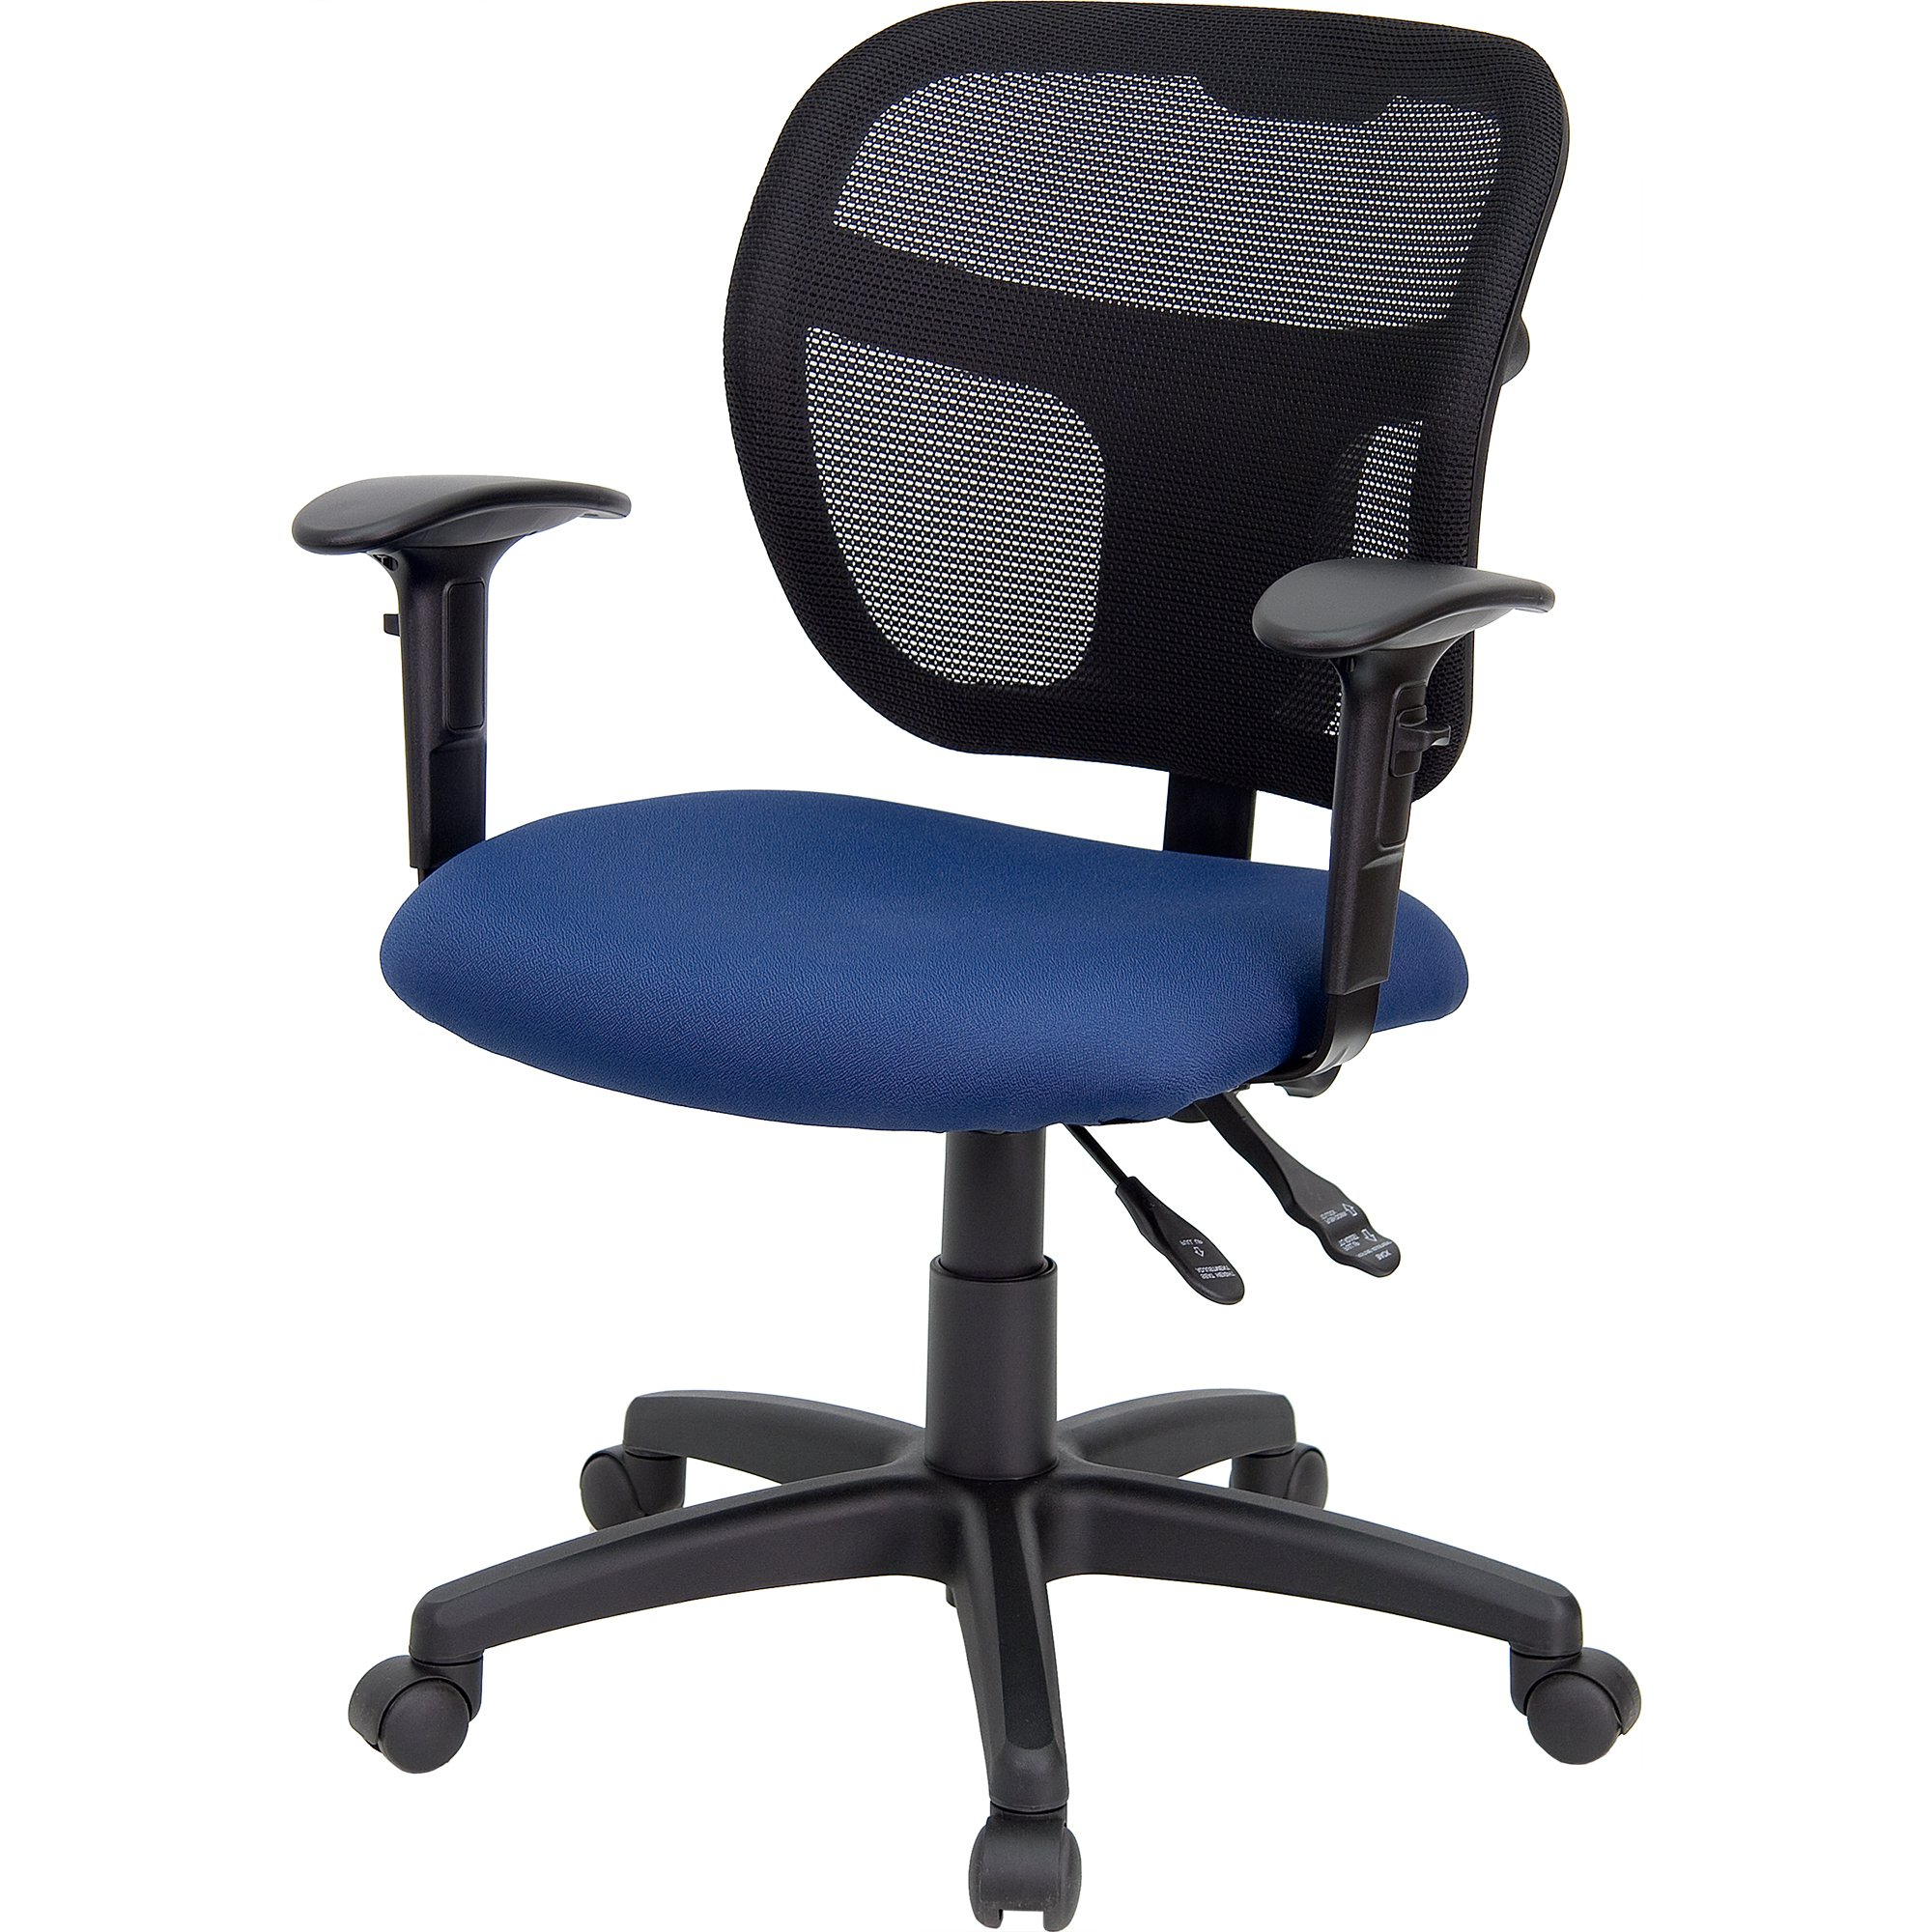 Theo Ii Swivel Chairs Intended For Trendy Shop Theo Mesh Dual Paddle Control Adjustable Swivel Ergonomic (View 14 of 20)